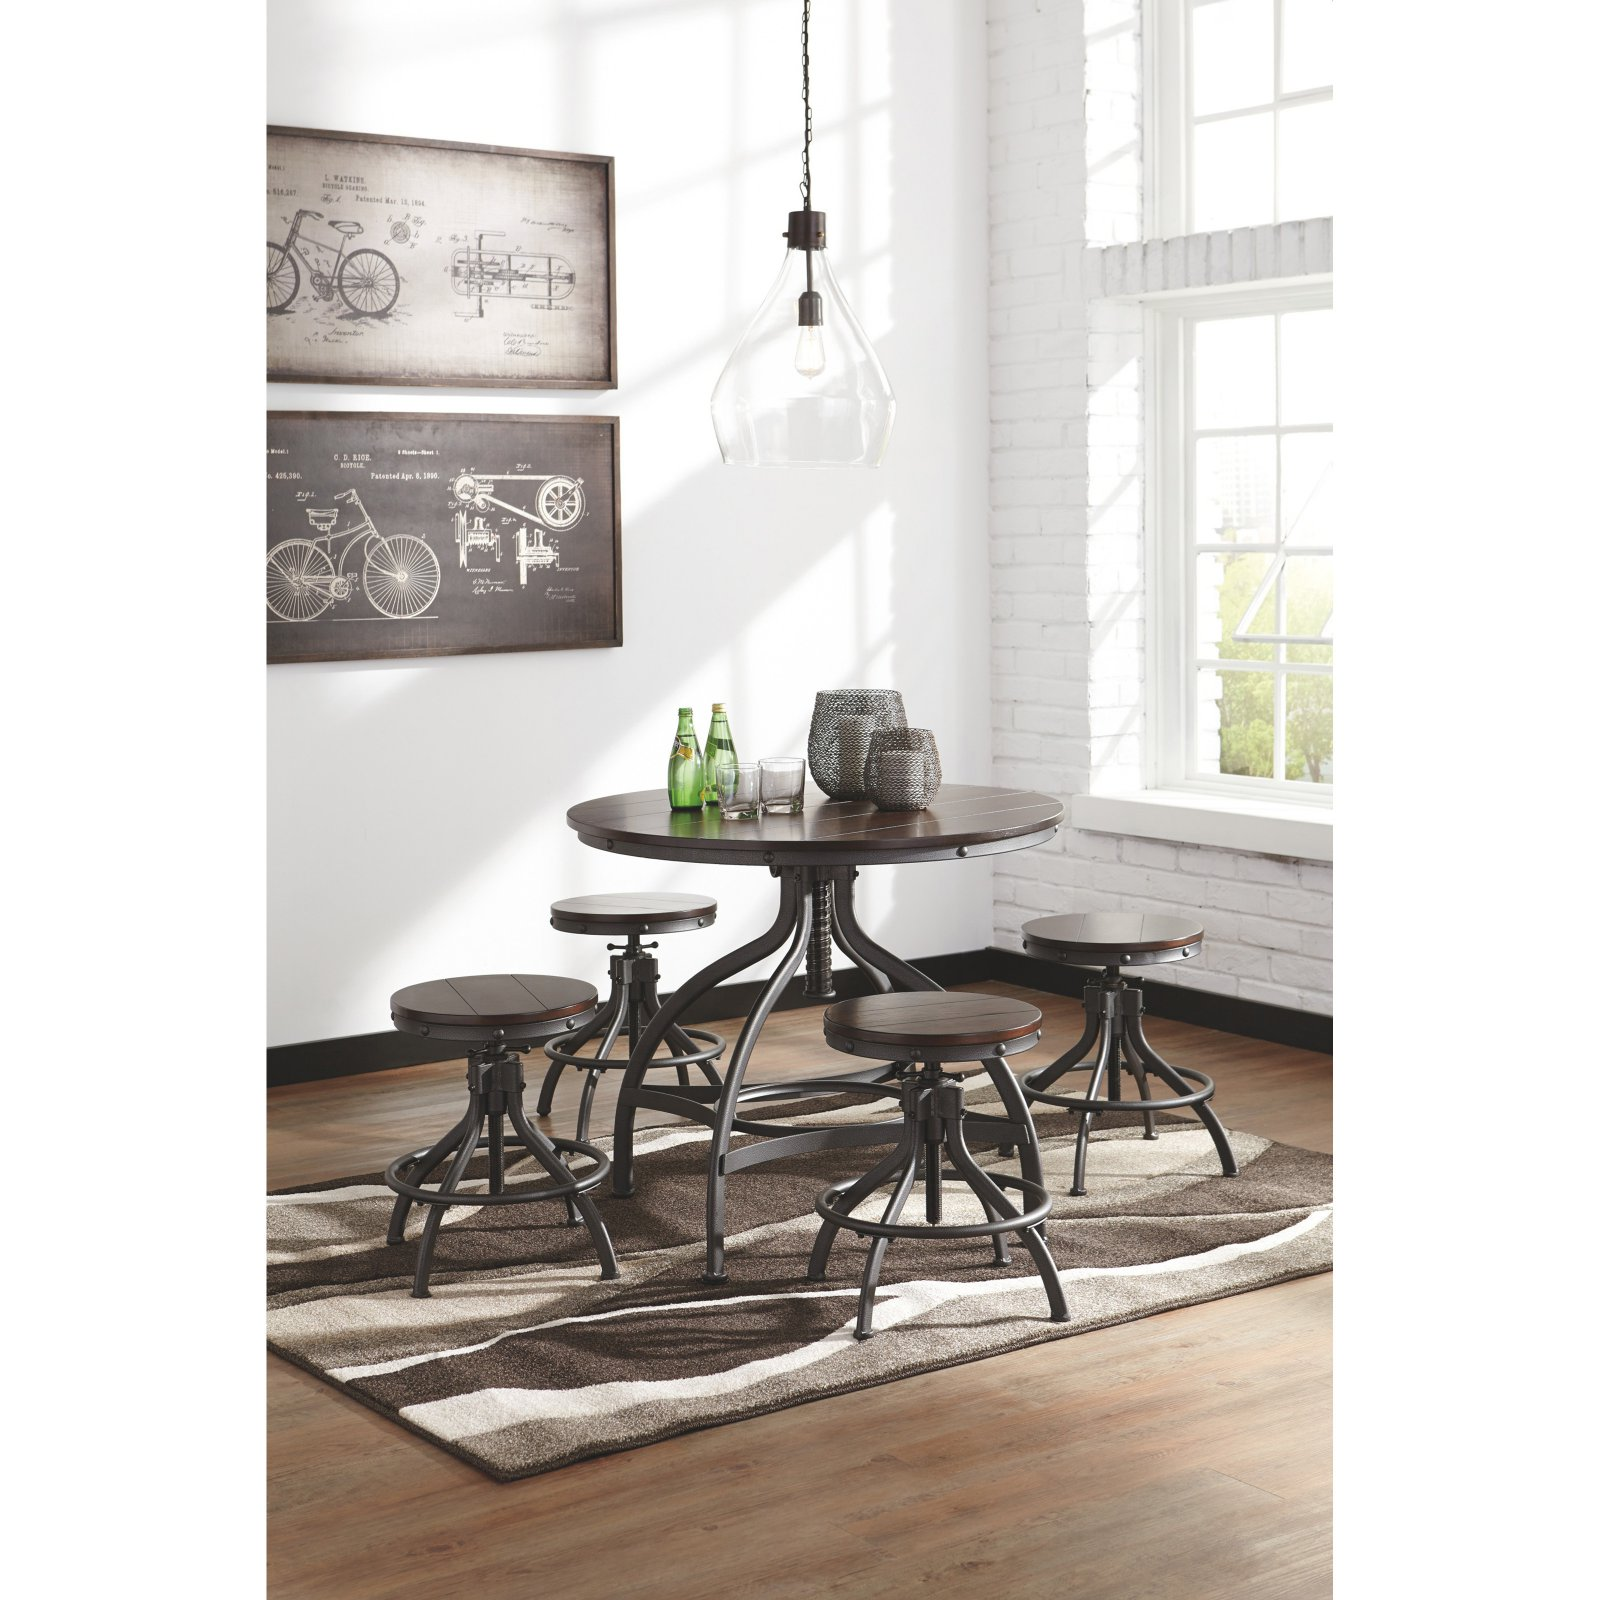 Signature Design by Ashley Odium 5 Piece Adjustable Height Dining